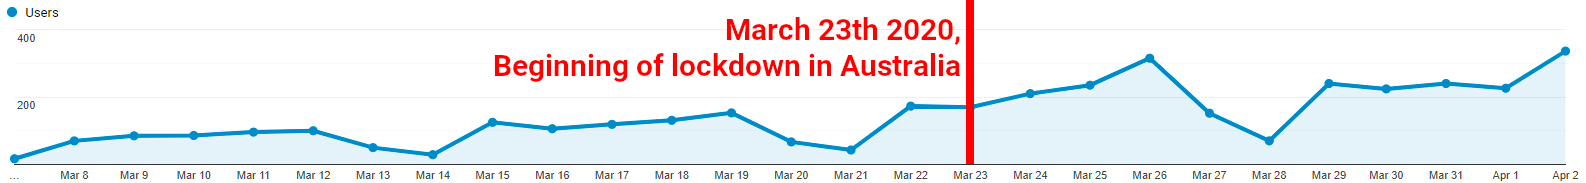 Users per day in Australia, March 2020 - Lockdown on March 23th